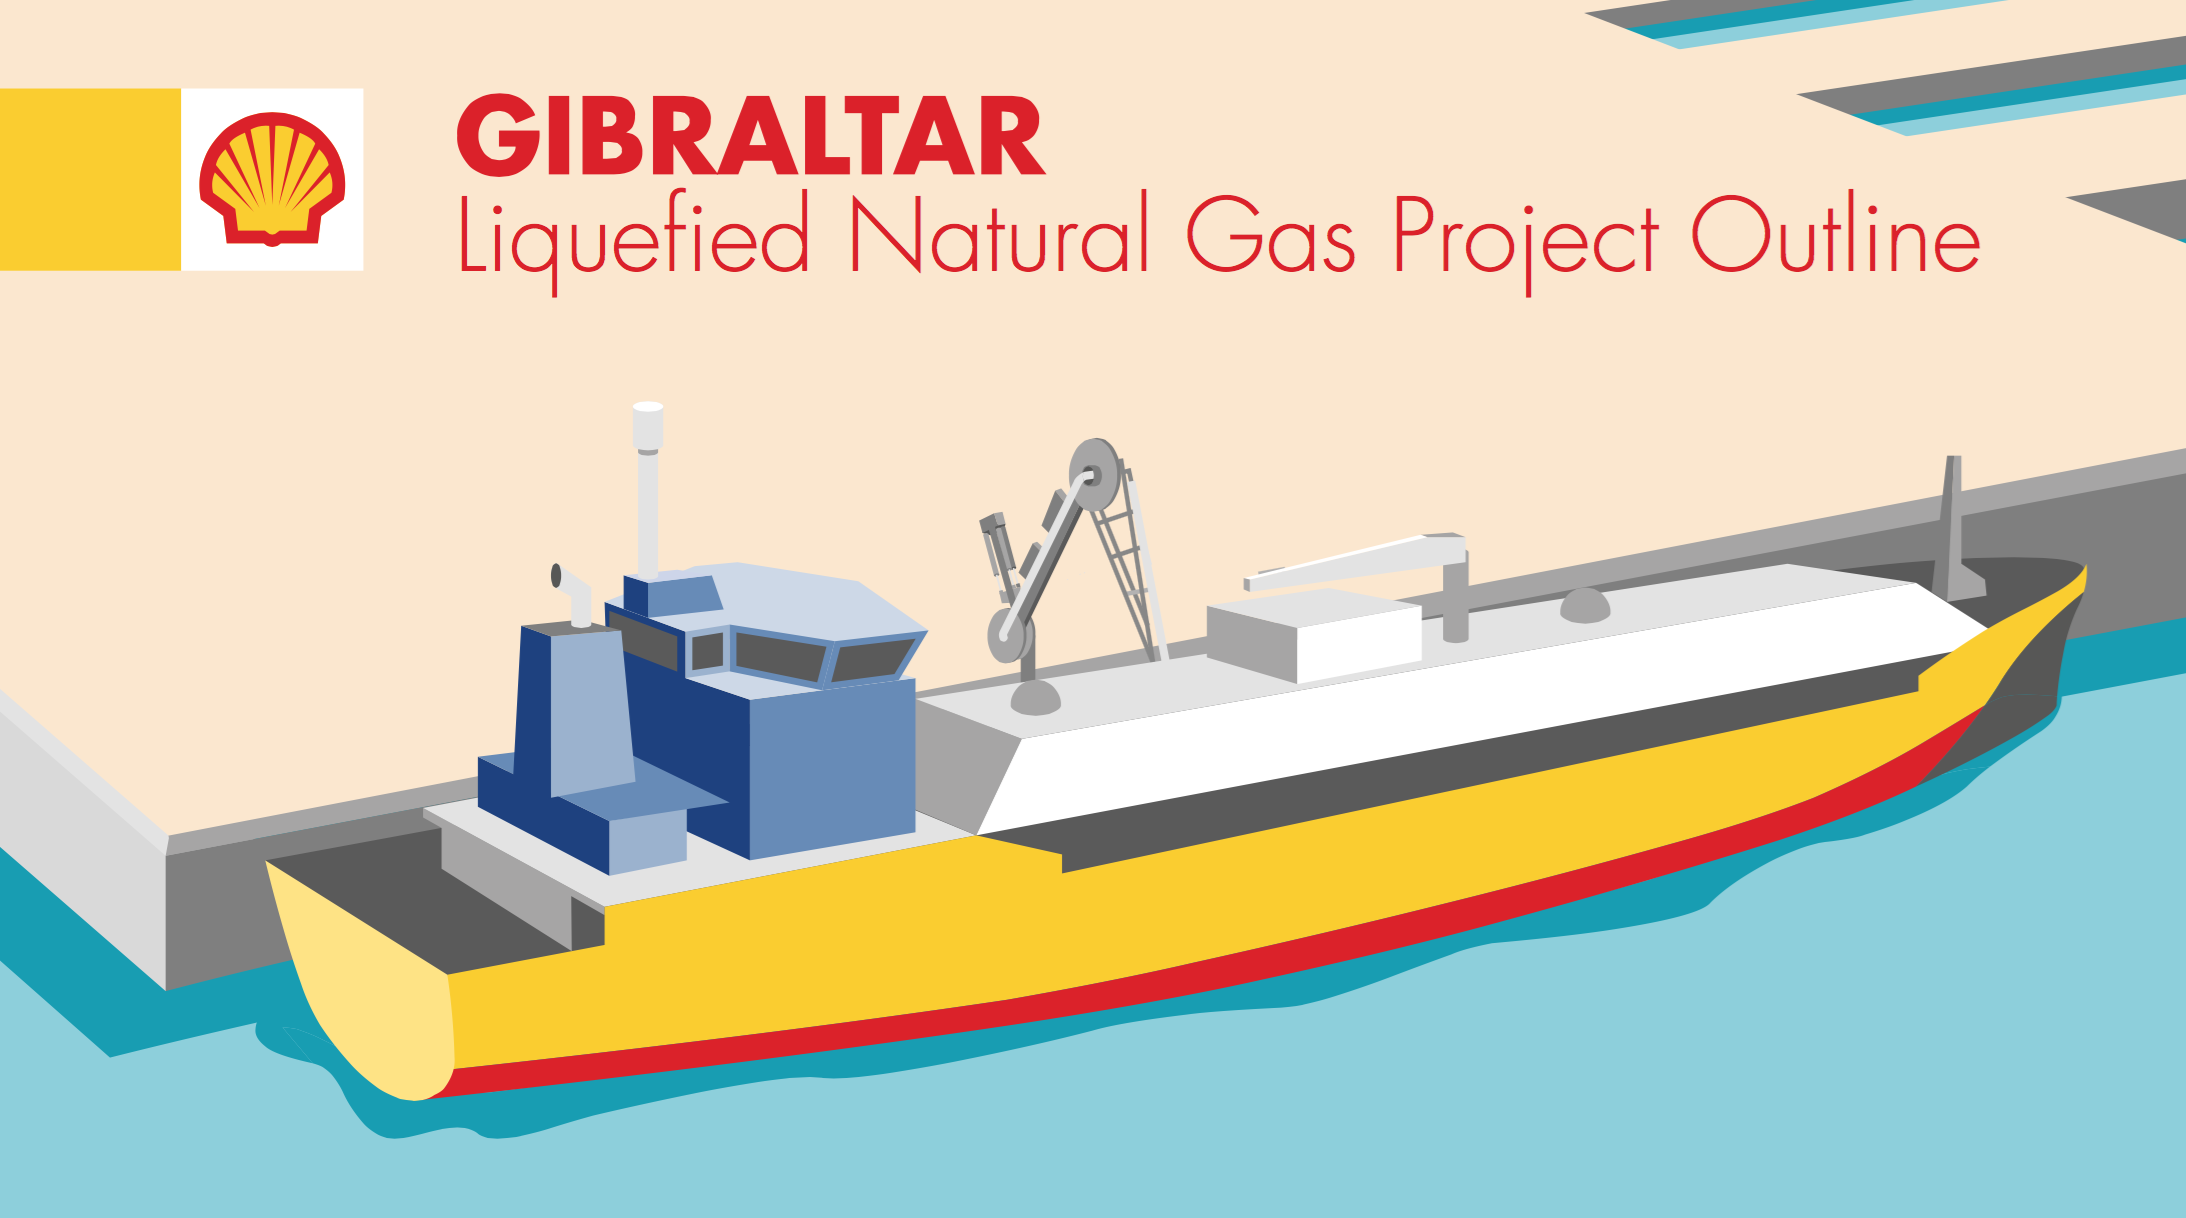 Gibratar Liquefied Natural Gas Project Outline